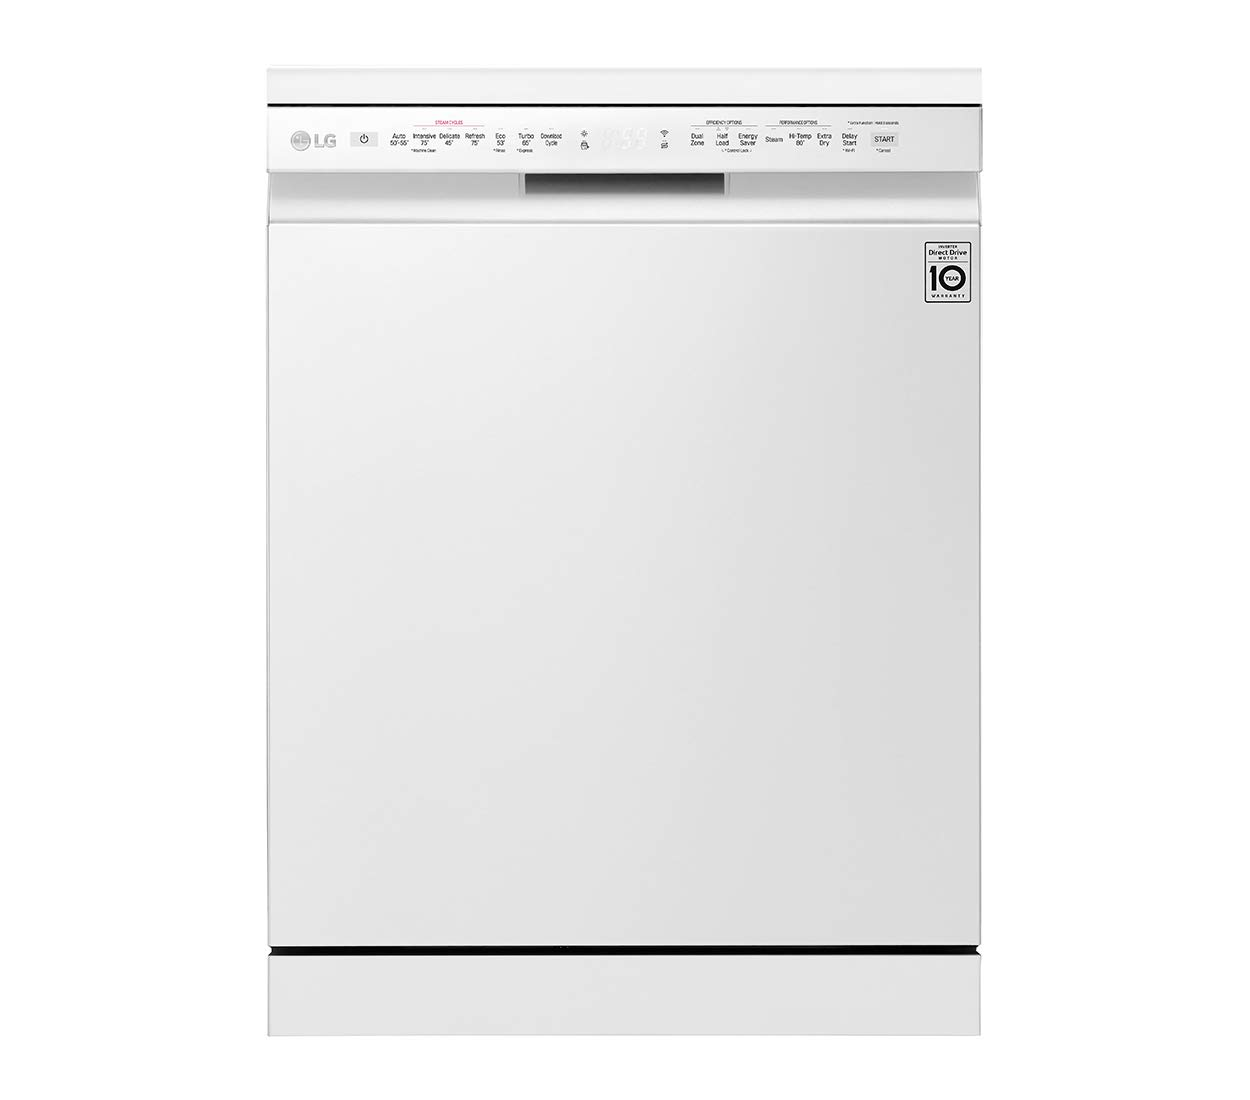 LG 14 Place Settings Dishwasher (DFB424FW, White color)